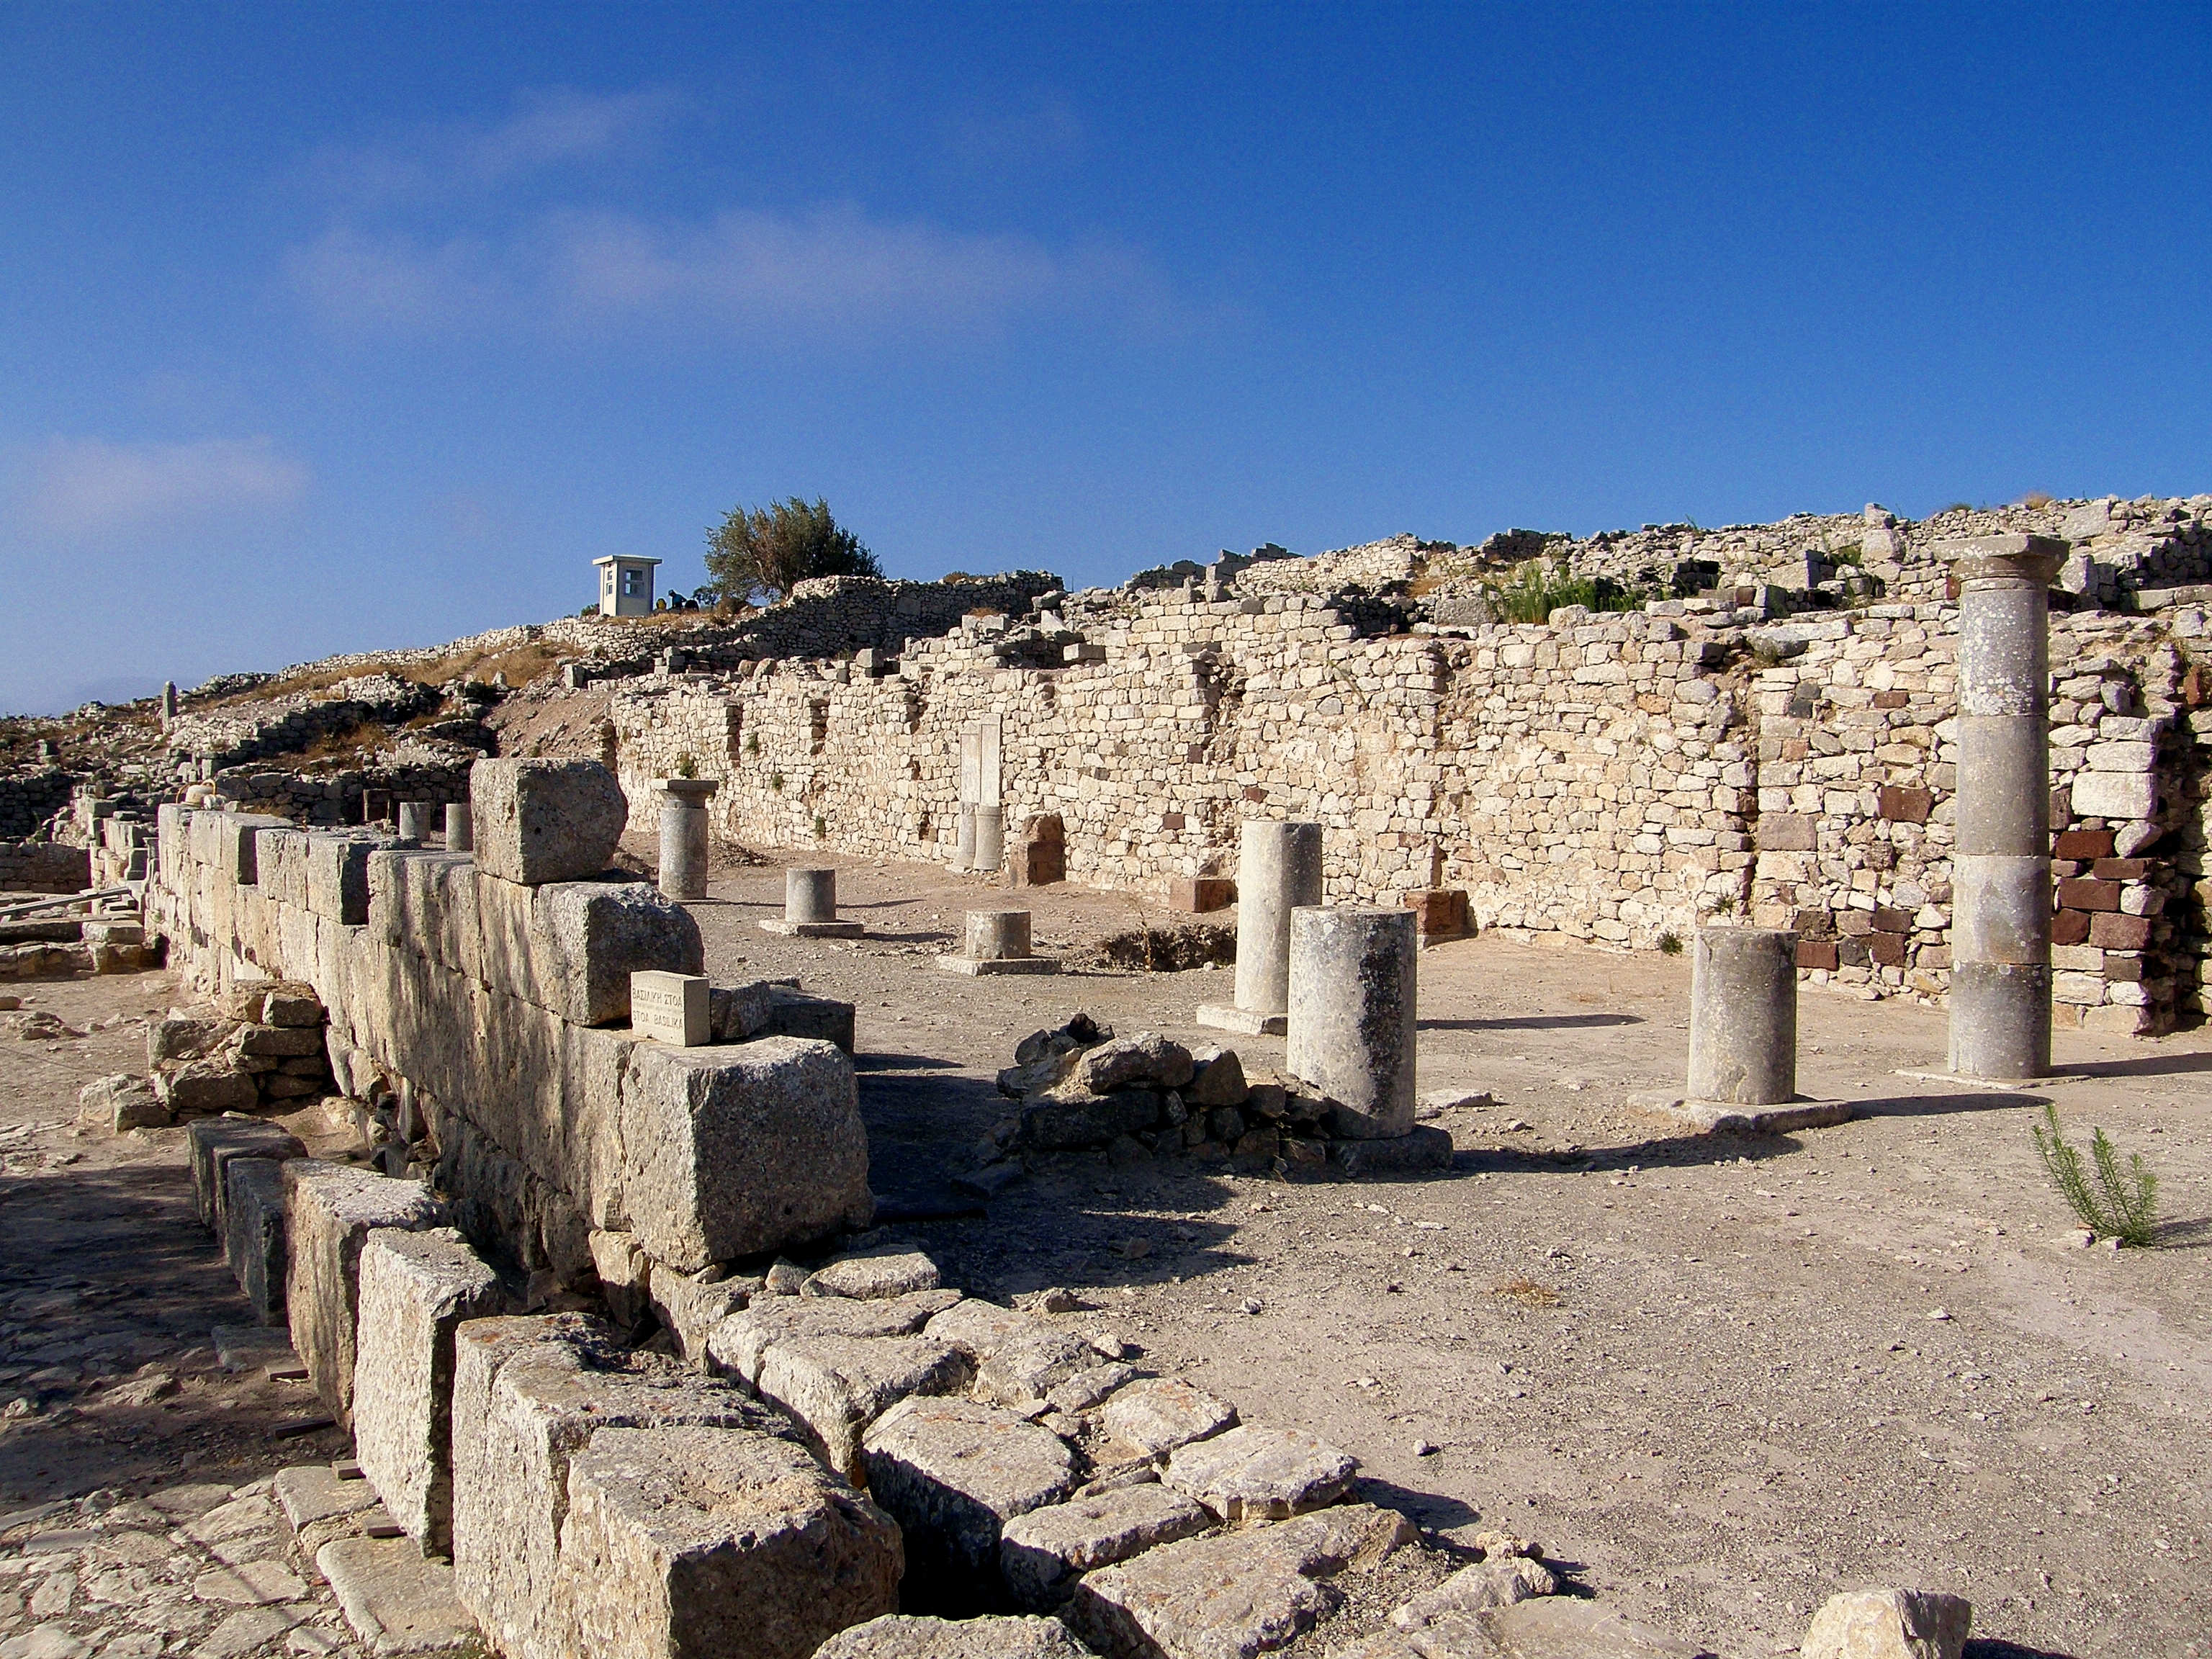 It might not look like much, but this was once the Stoa Basilica in ancient Thira.